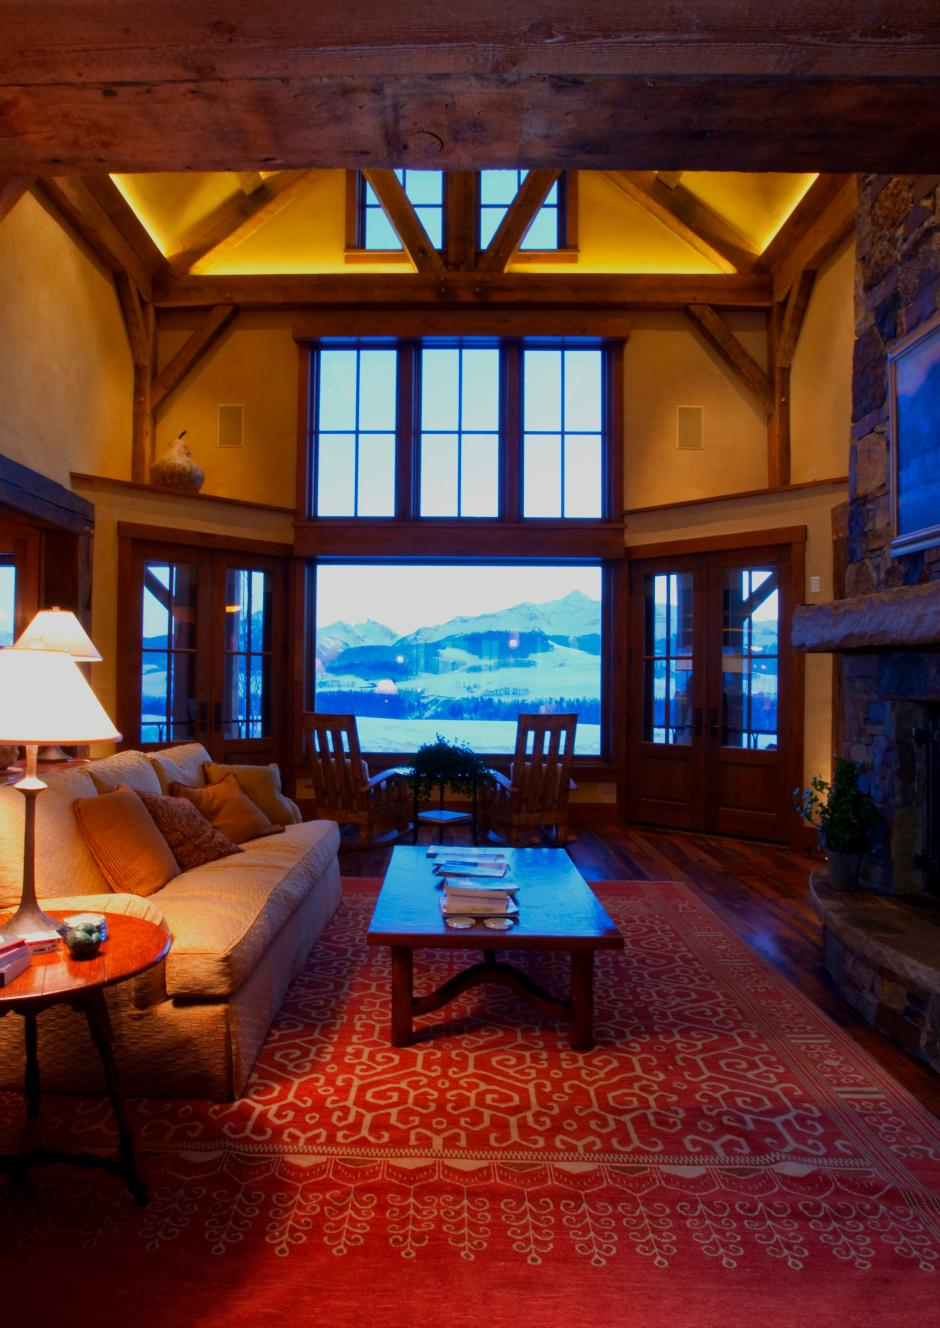 1GH Living Room - Stone and Timber Home in Colorado